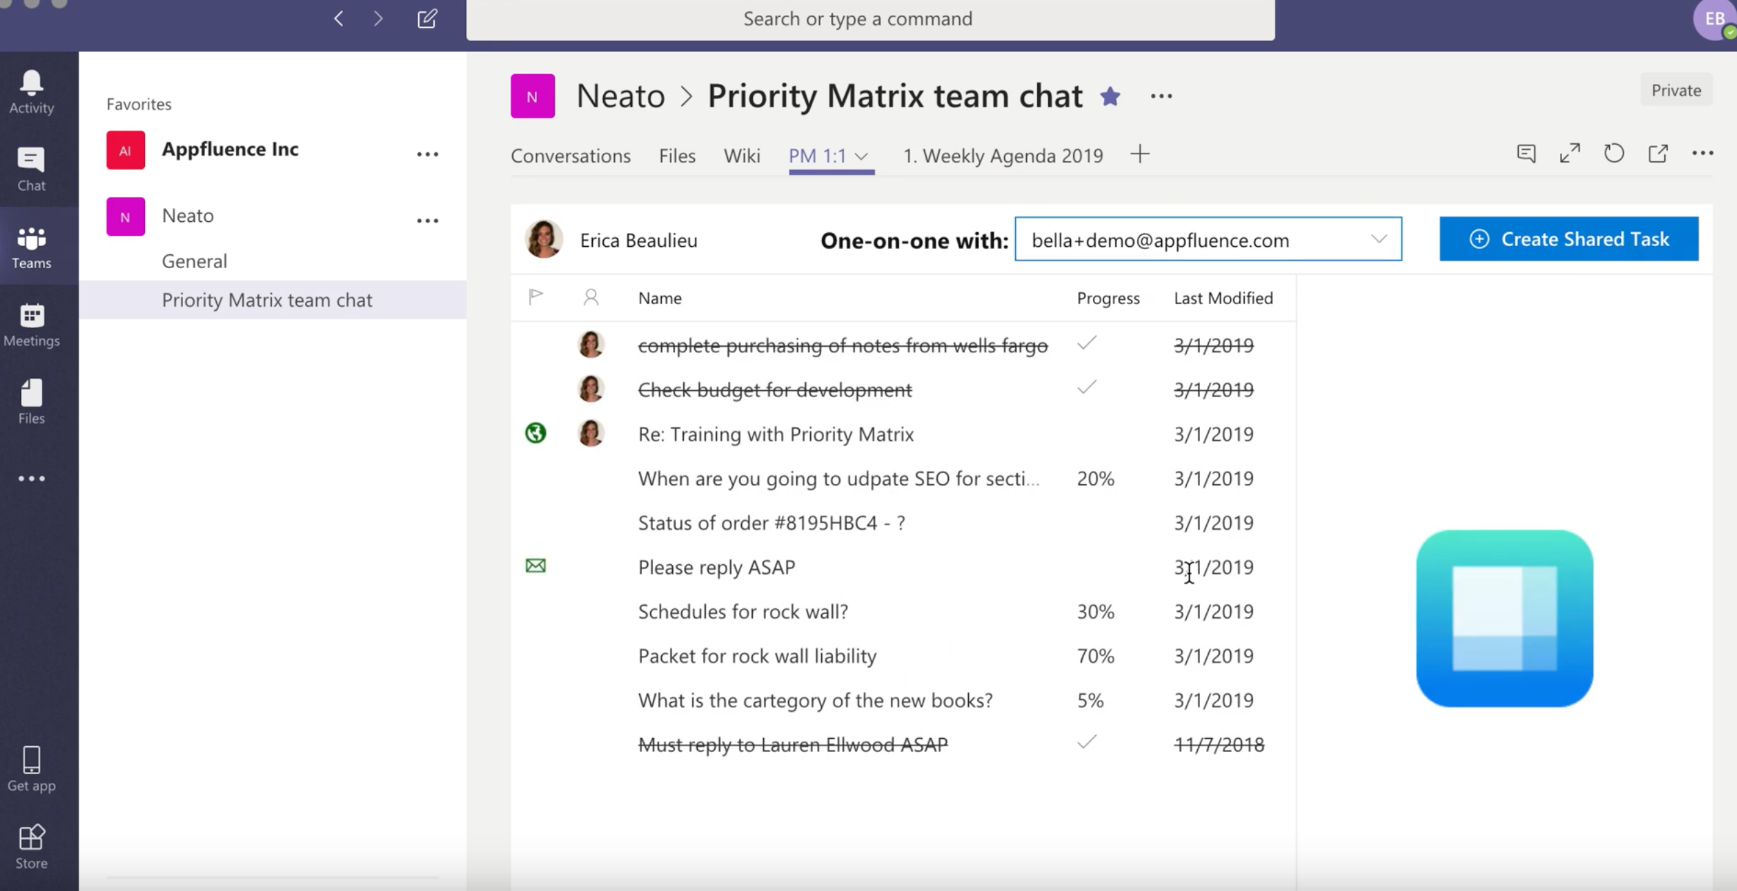 Priority Matrix Microsoft Teams integration